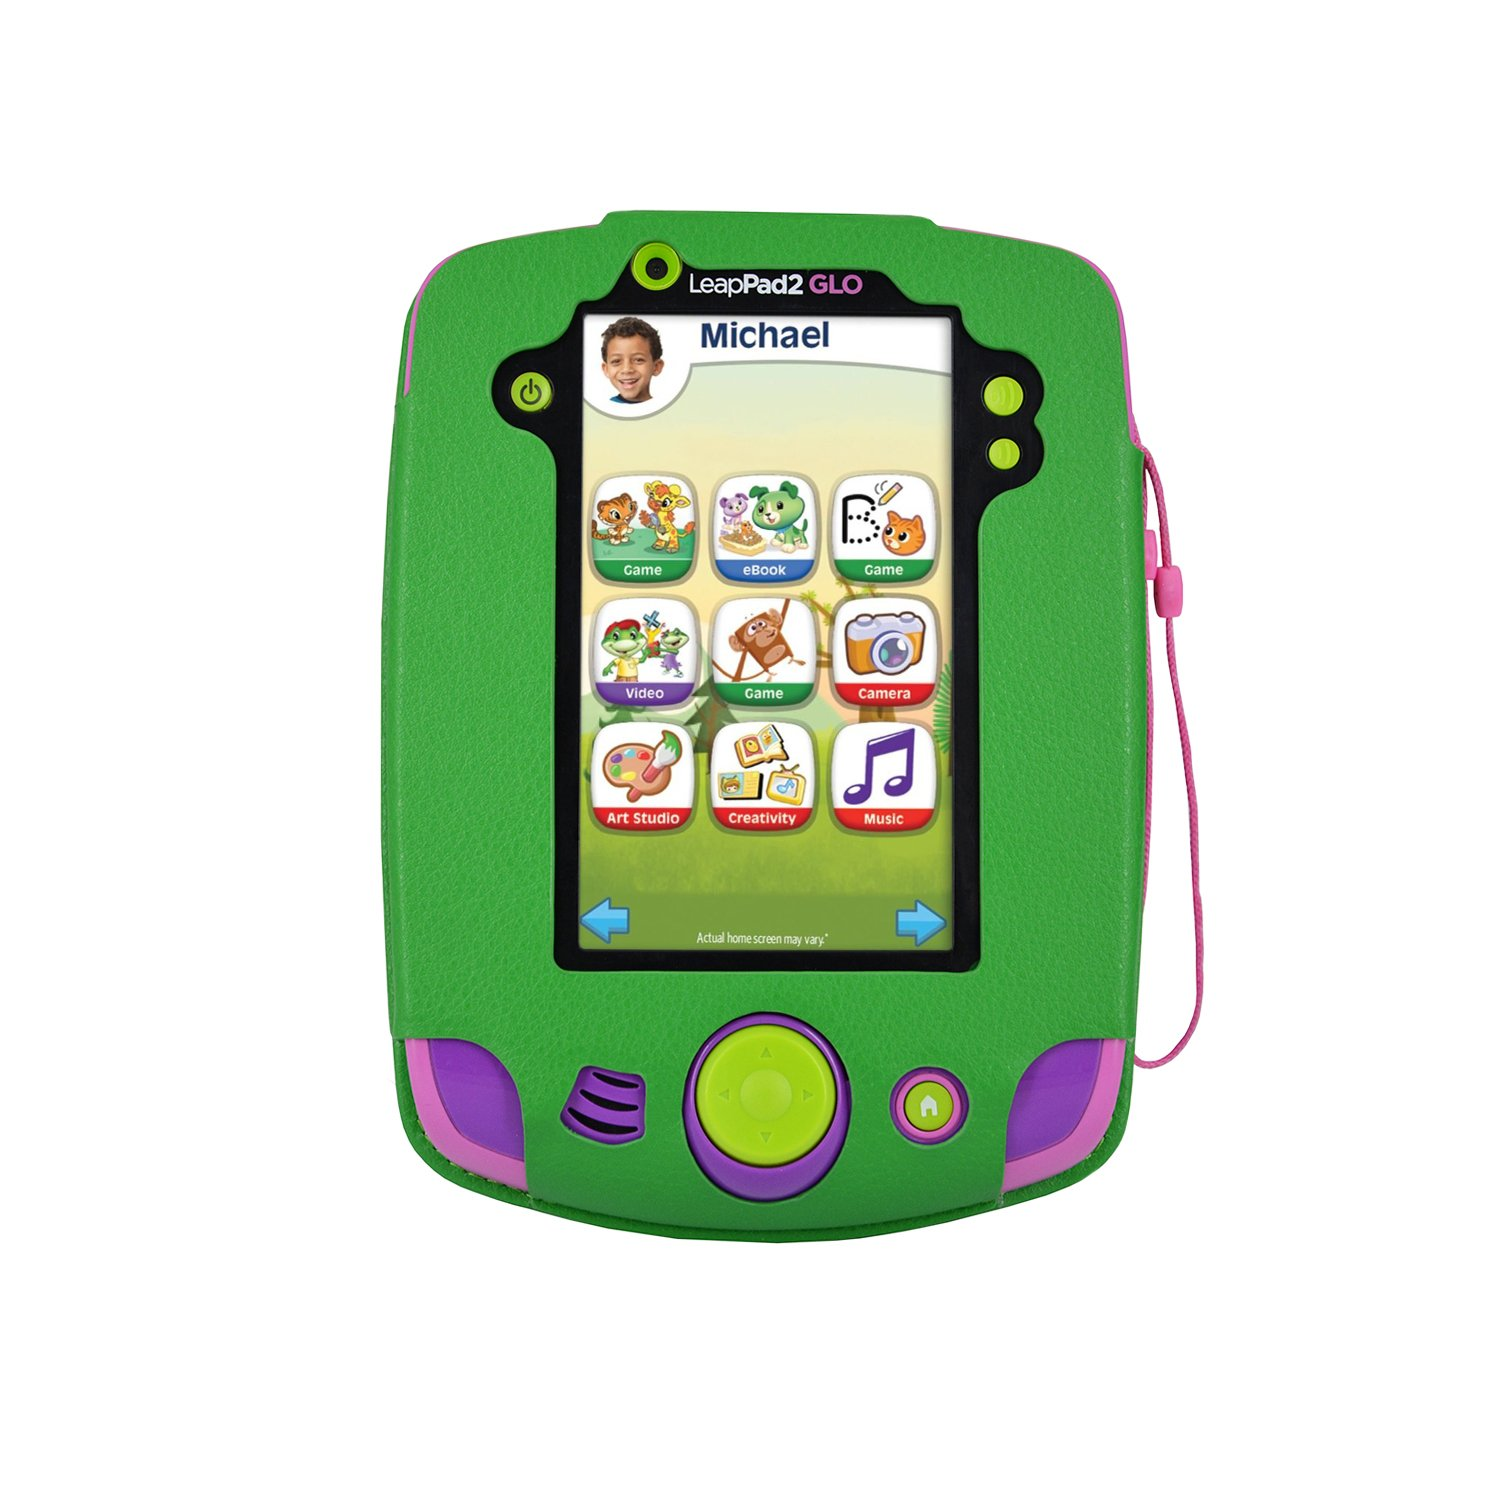 Details about PU Leather Cover Case for LeapFrog LeapPad Glo Kids Learning  Tablet, Green